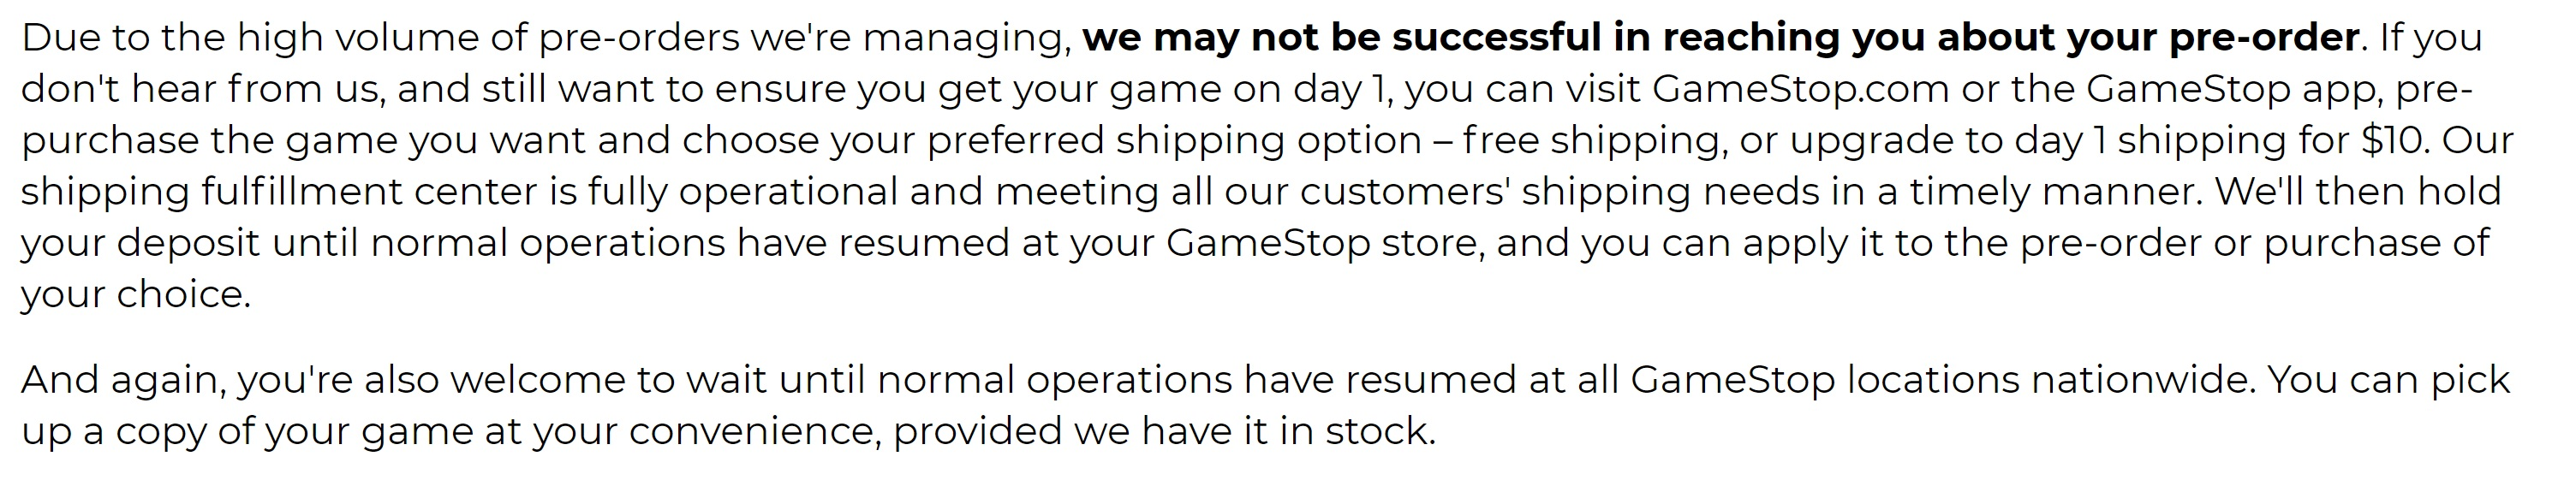 Gamestop Statement